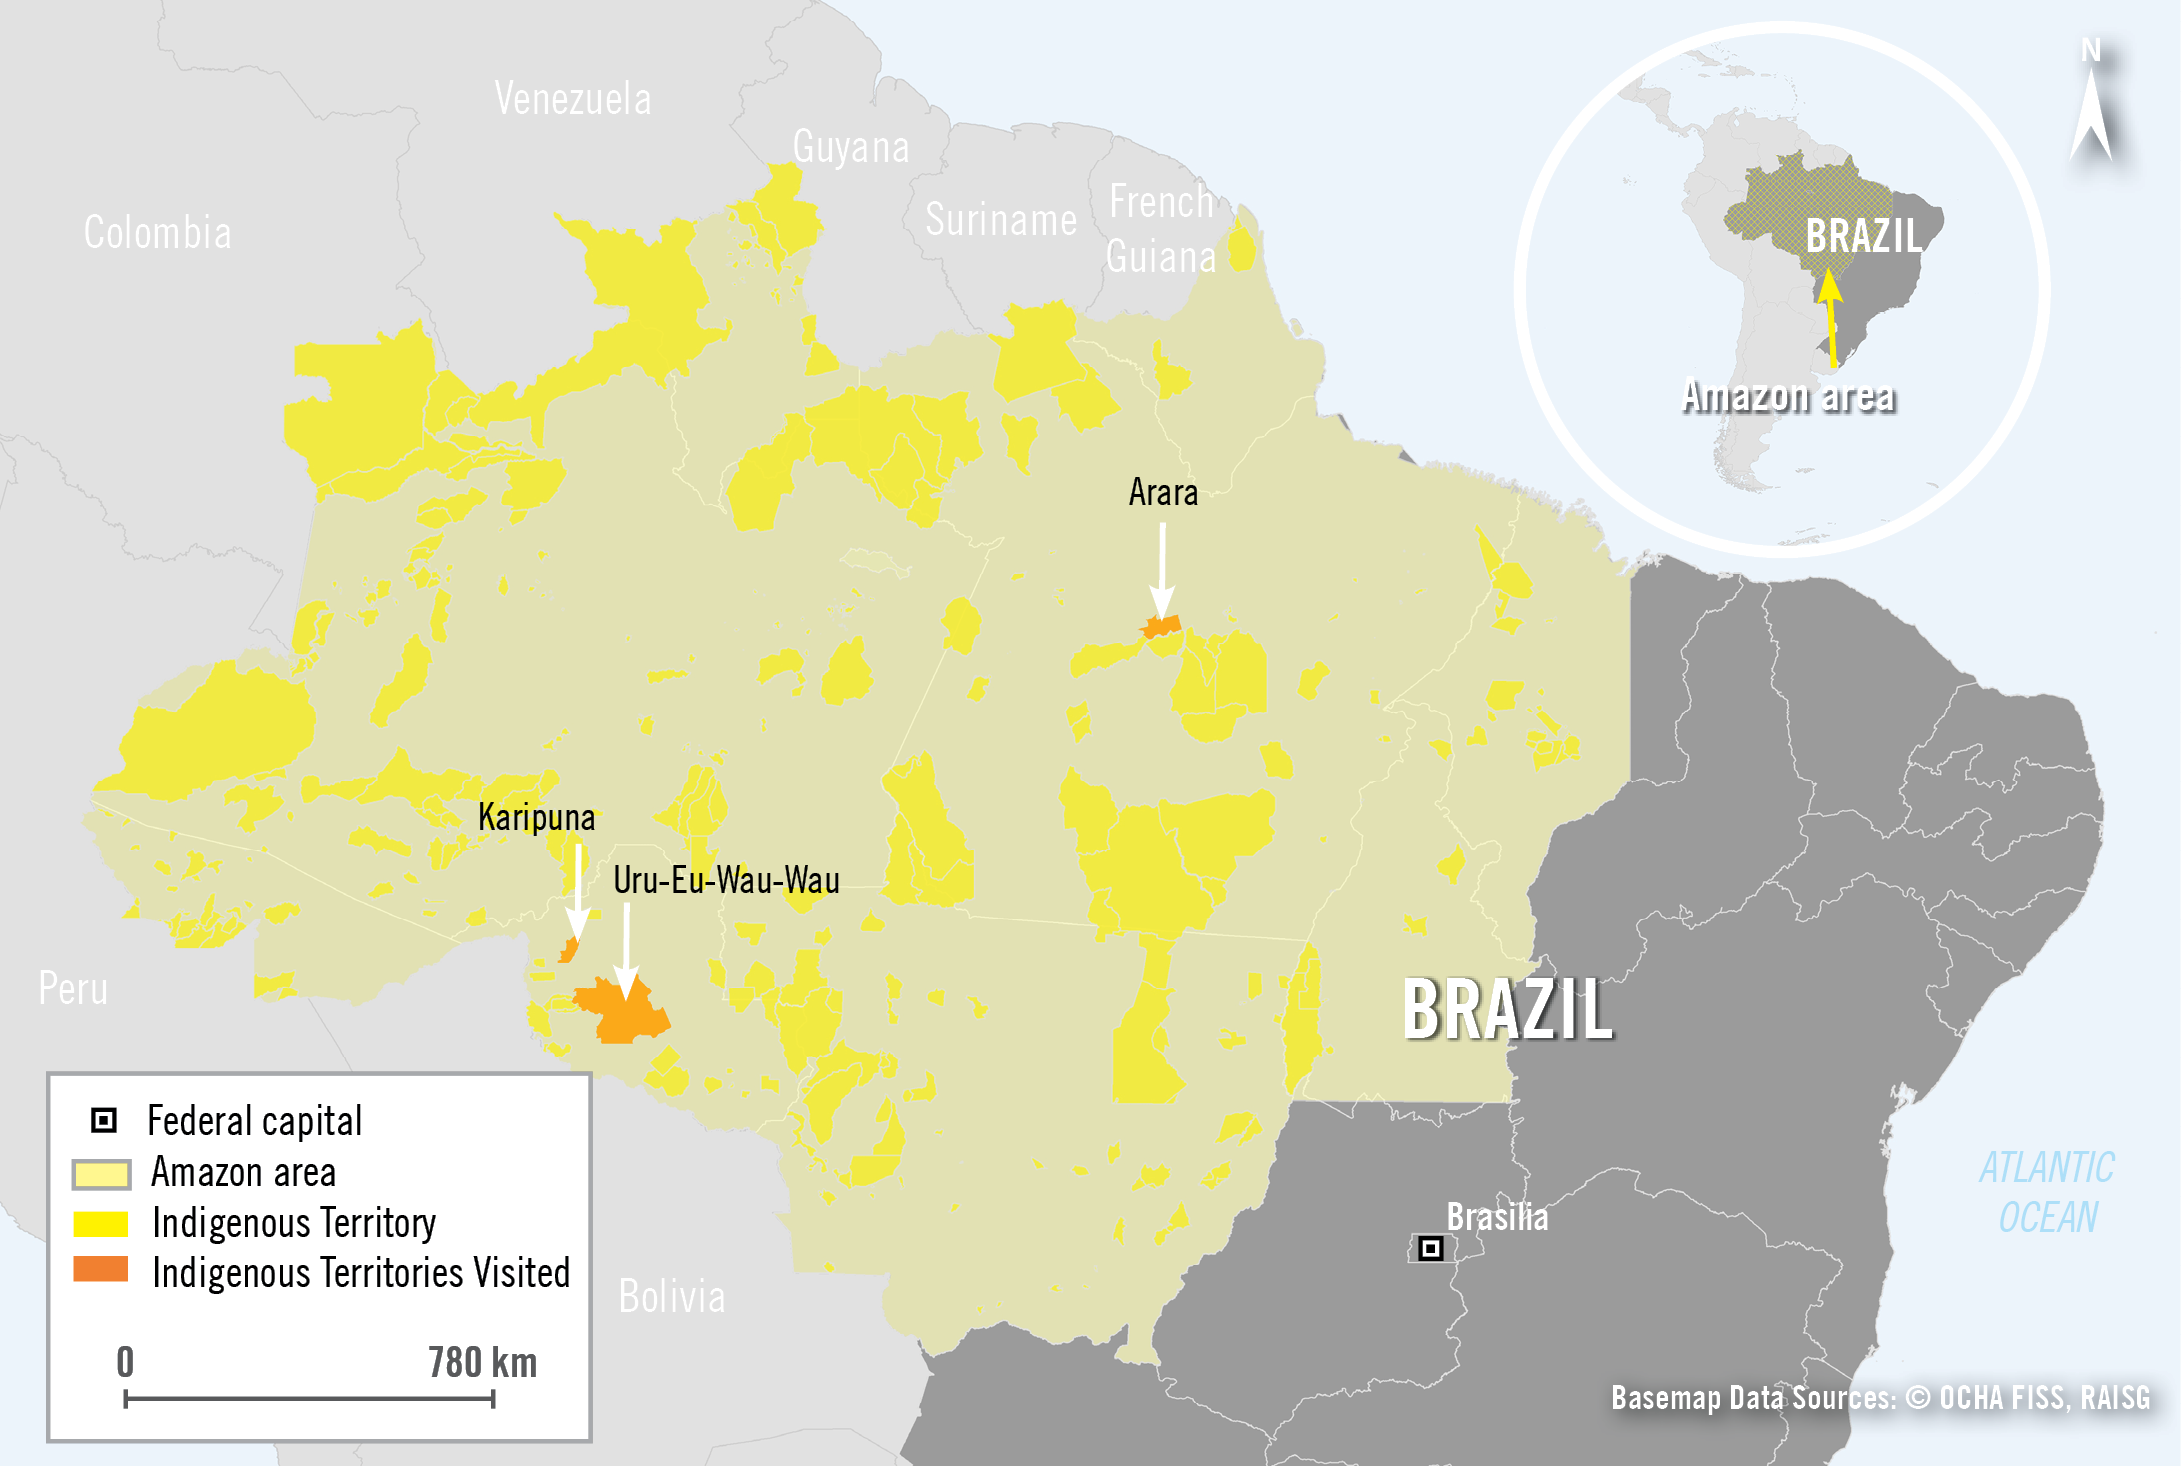 261984 Amazonas-Region-Brasilien-Karte | © Basemap data sources OCHA FISS, RAISG/Amnesty Interntional